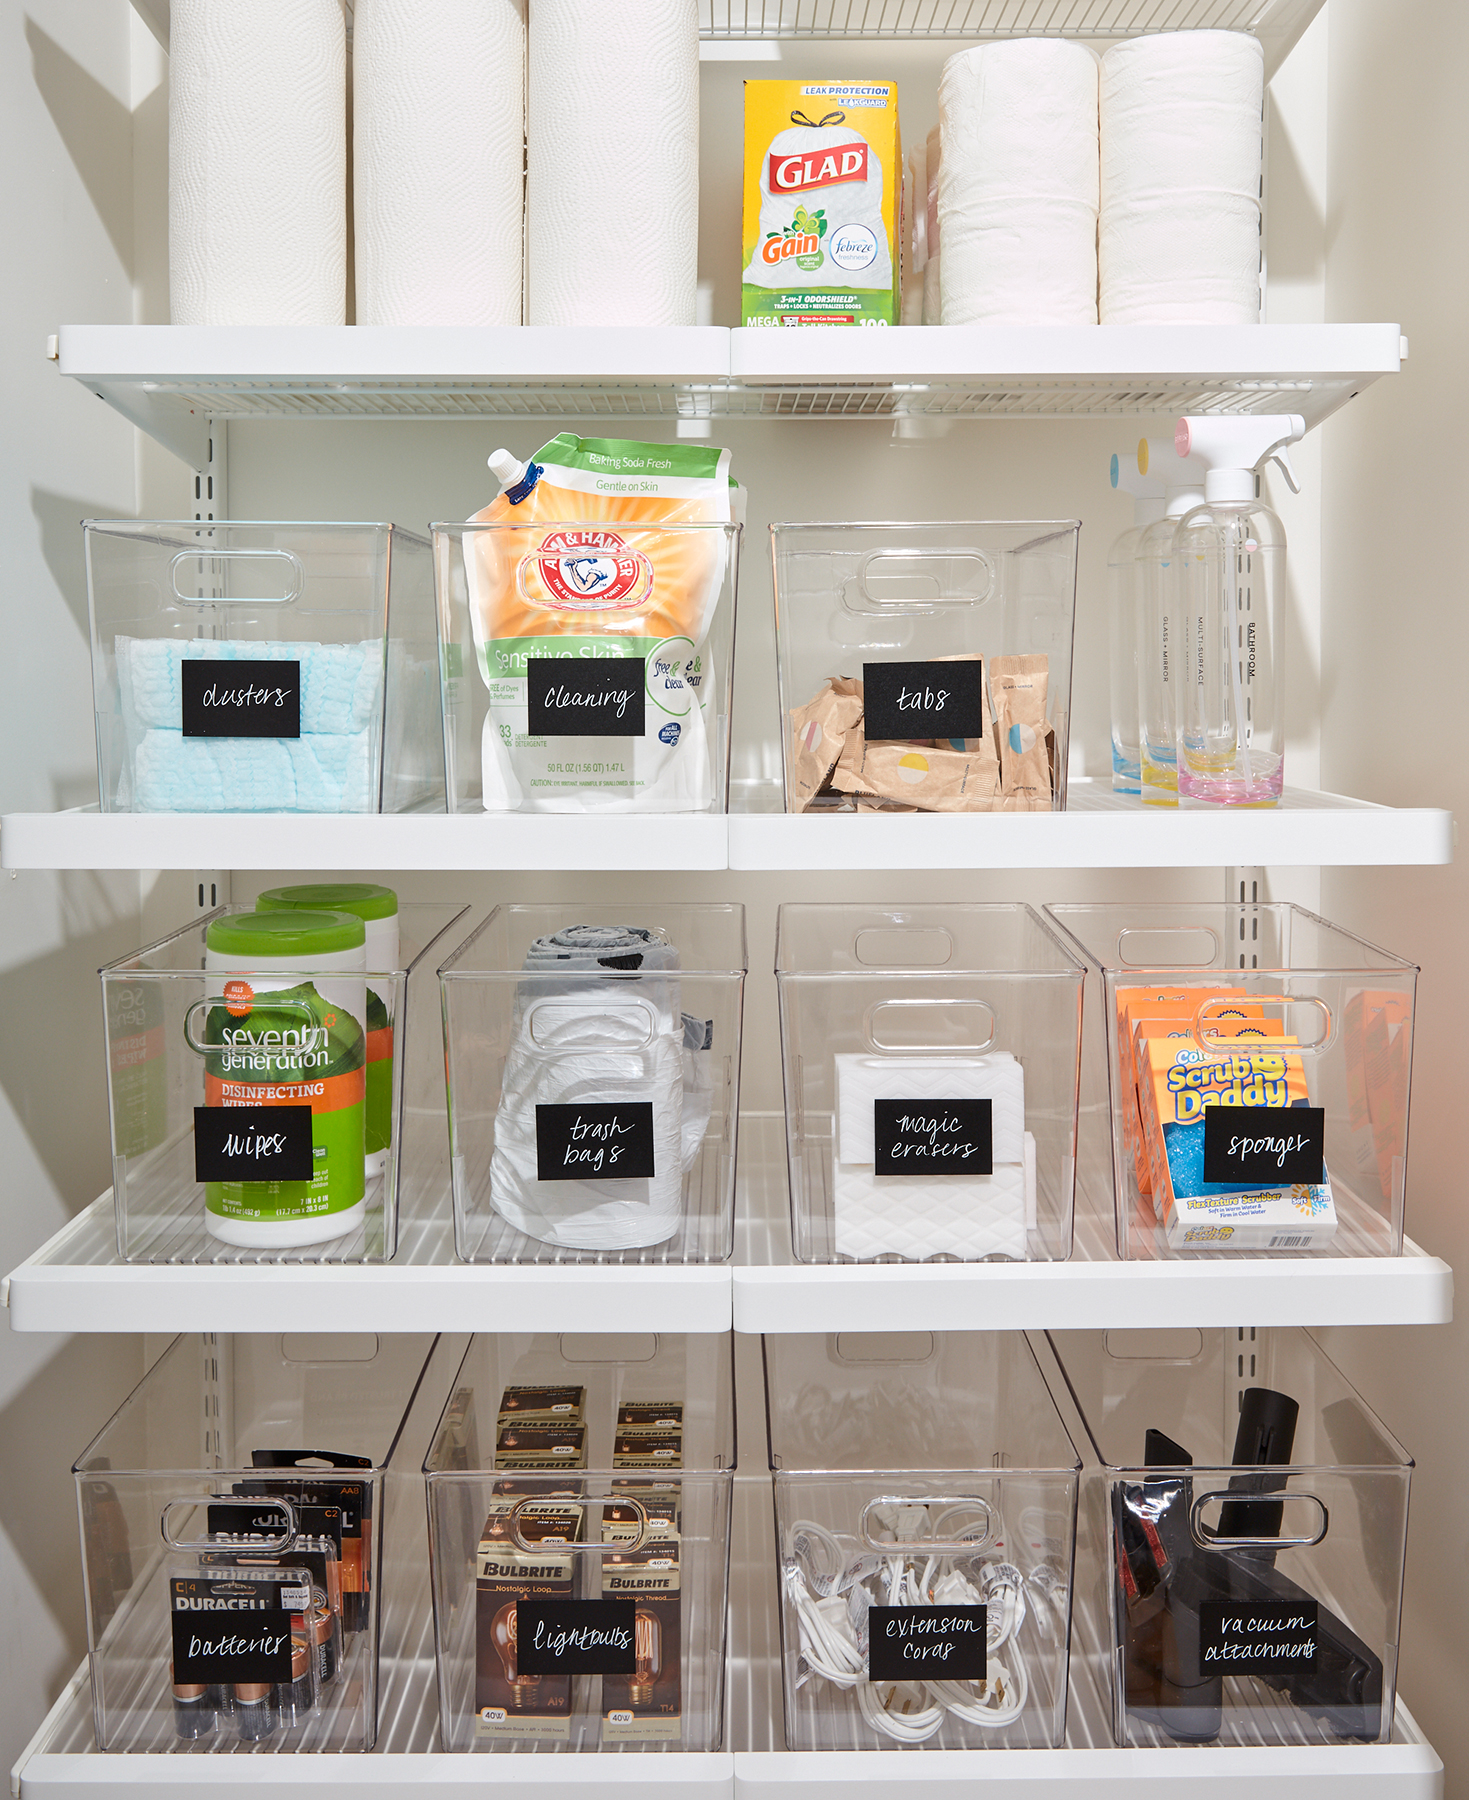 2019 Real Simple Home: Utility Closet